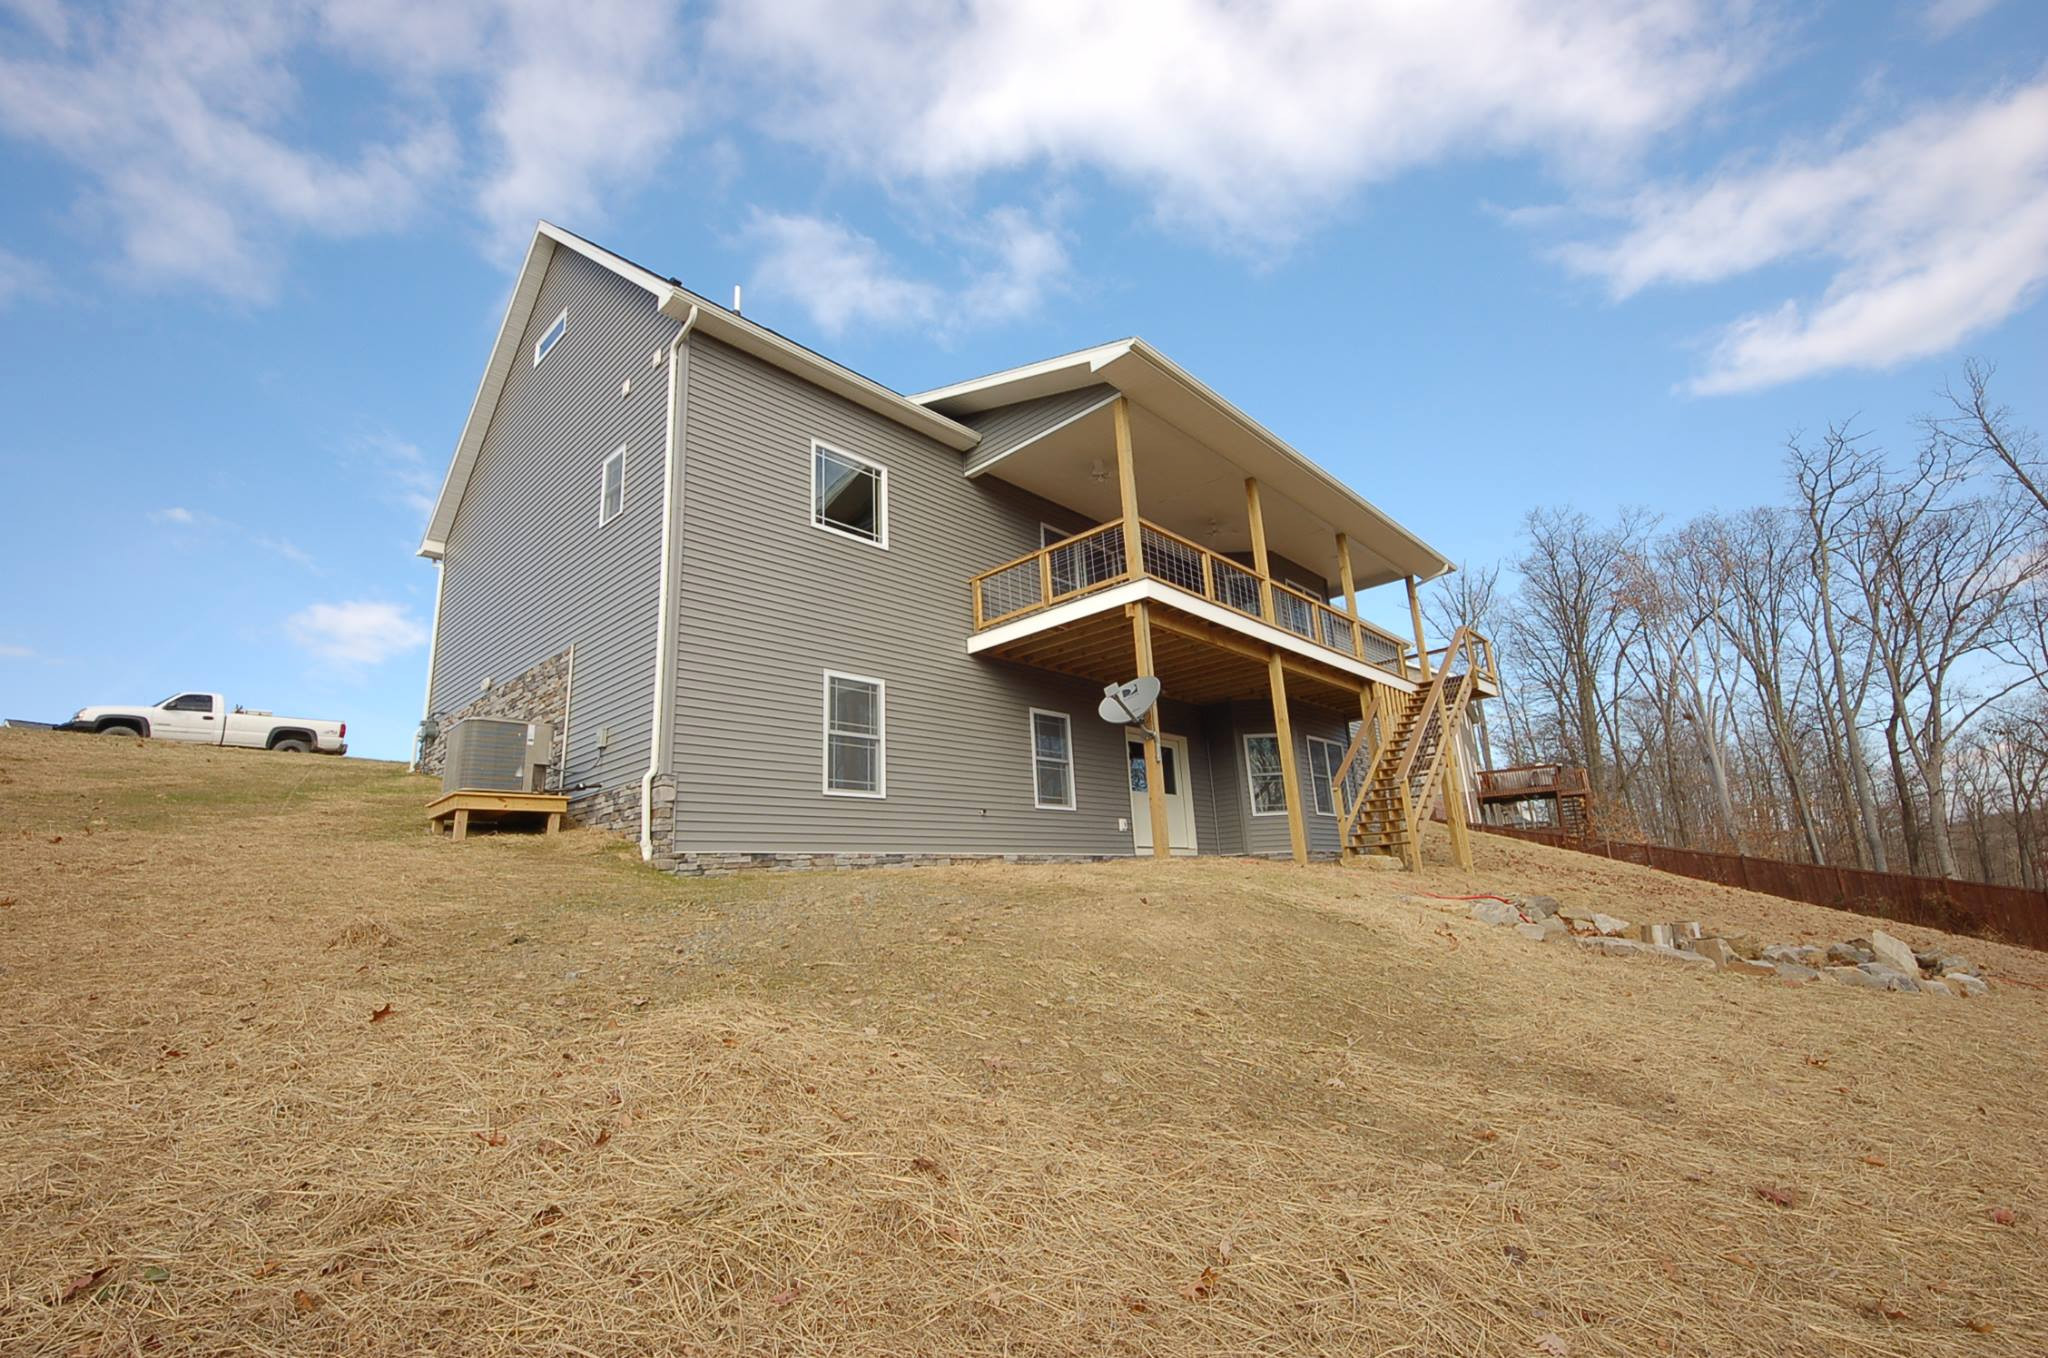 New Home Construction - on Morgantown hill